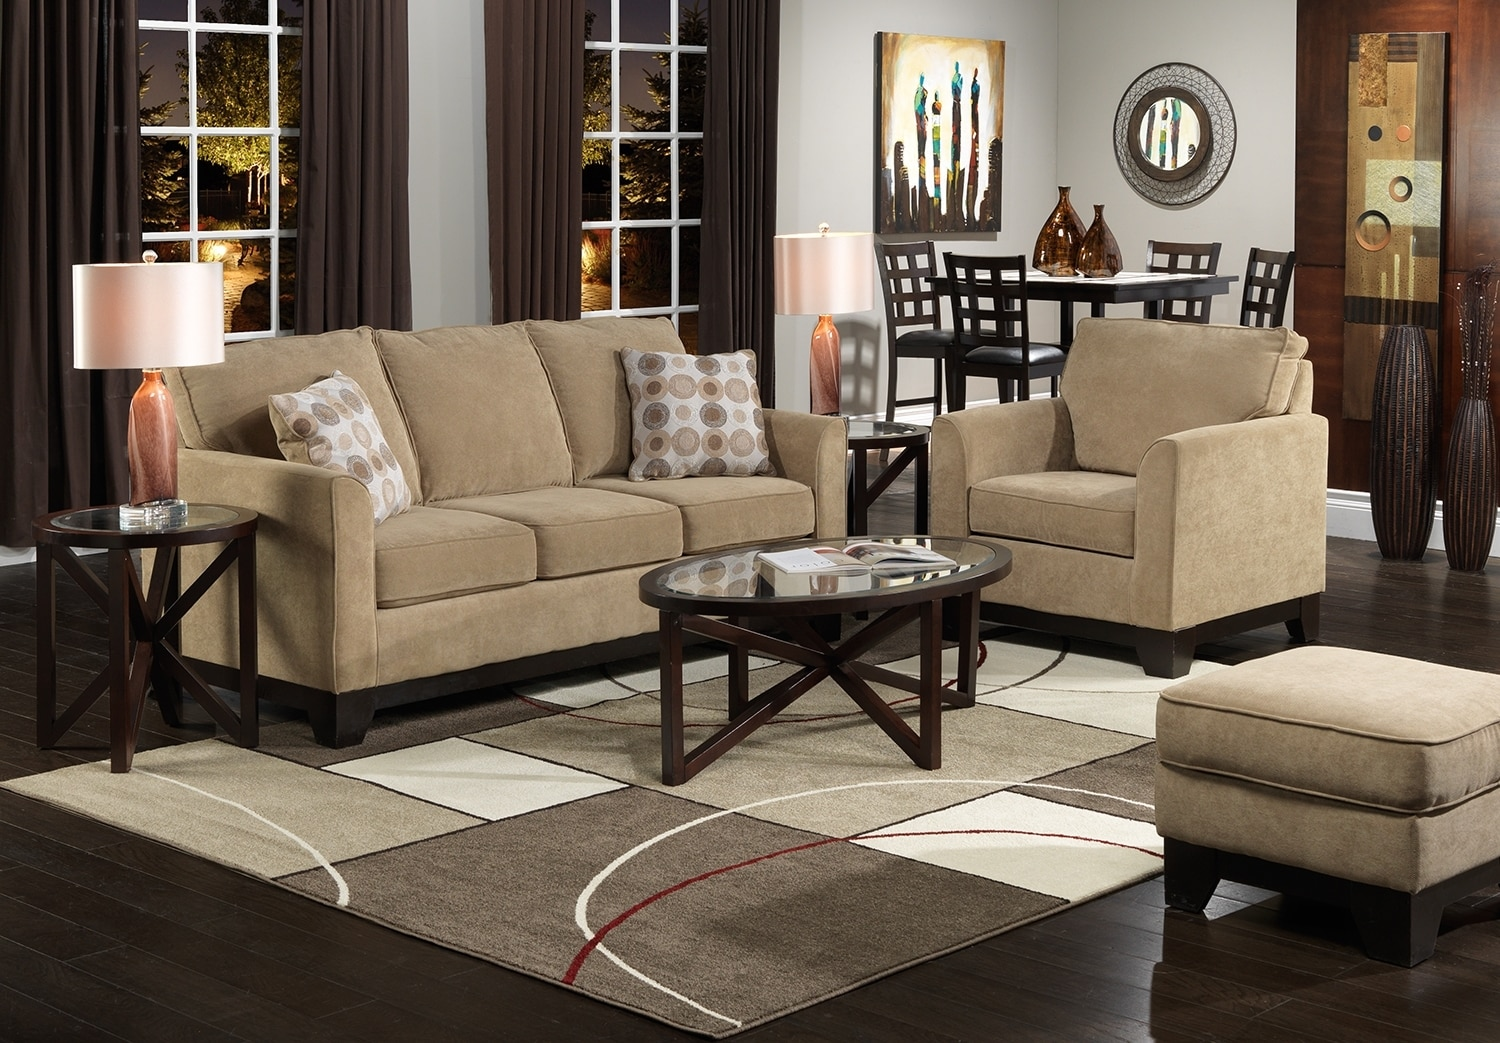 Living room furniture the sand castle collection sand castle sofa